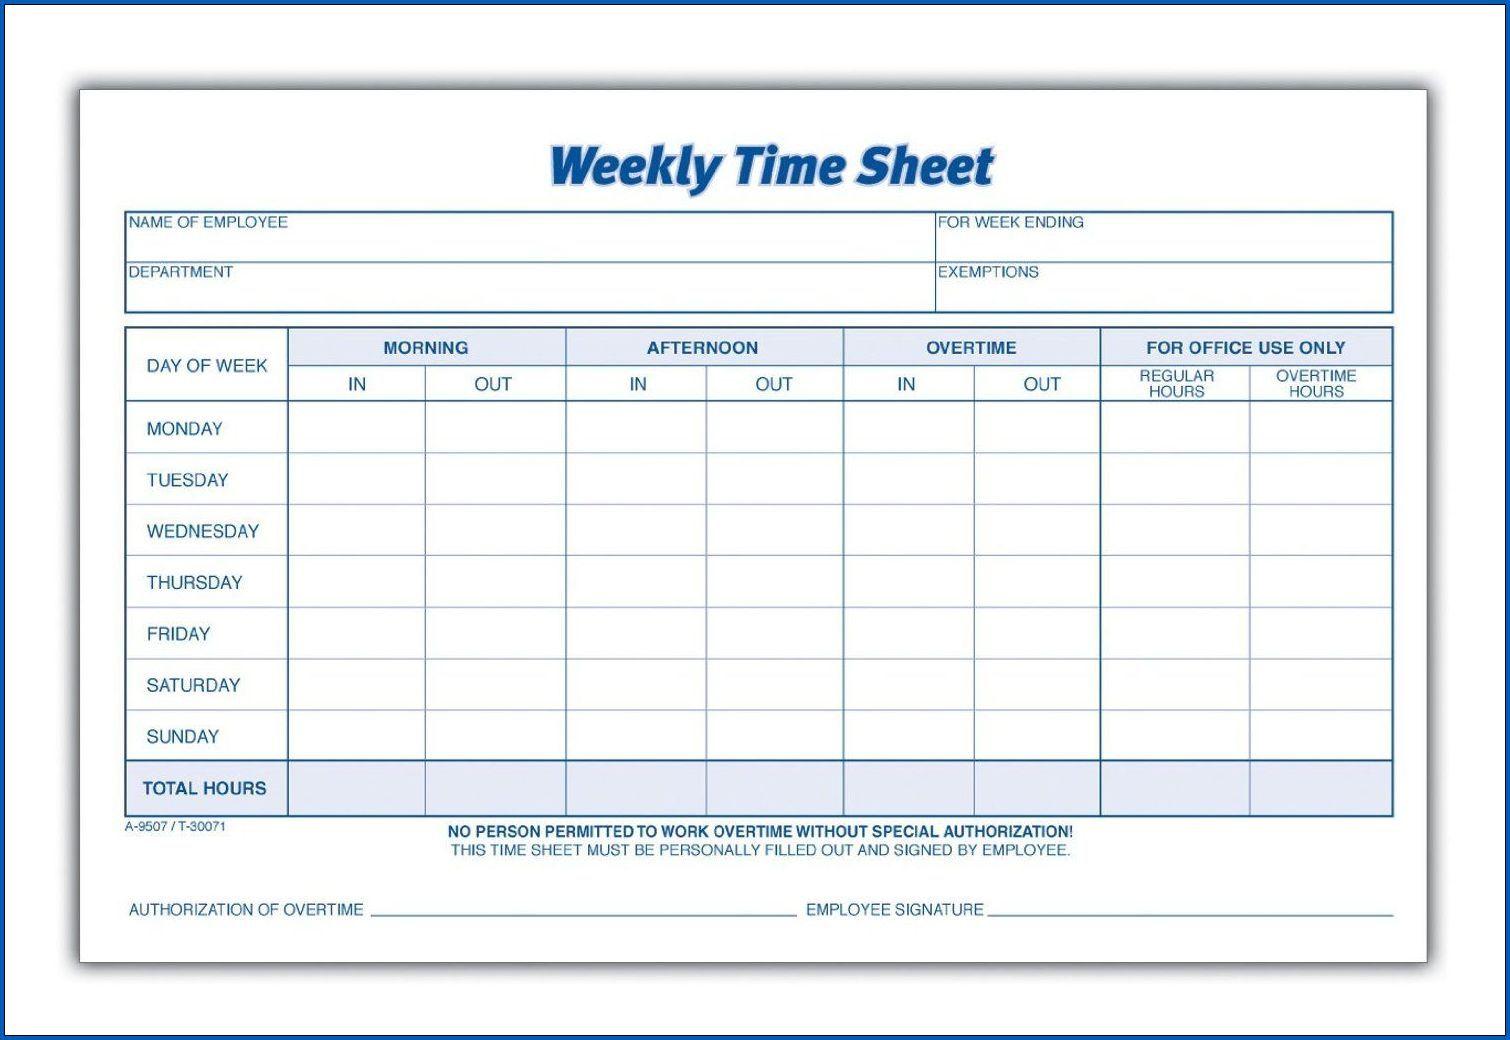 003 Archaicawful Weekly Timesheet Template Excel Photo  Simple FreeFull